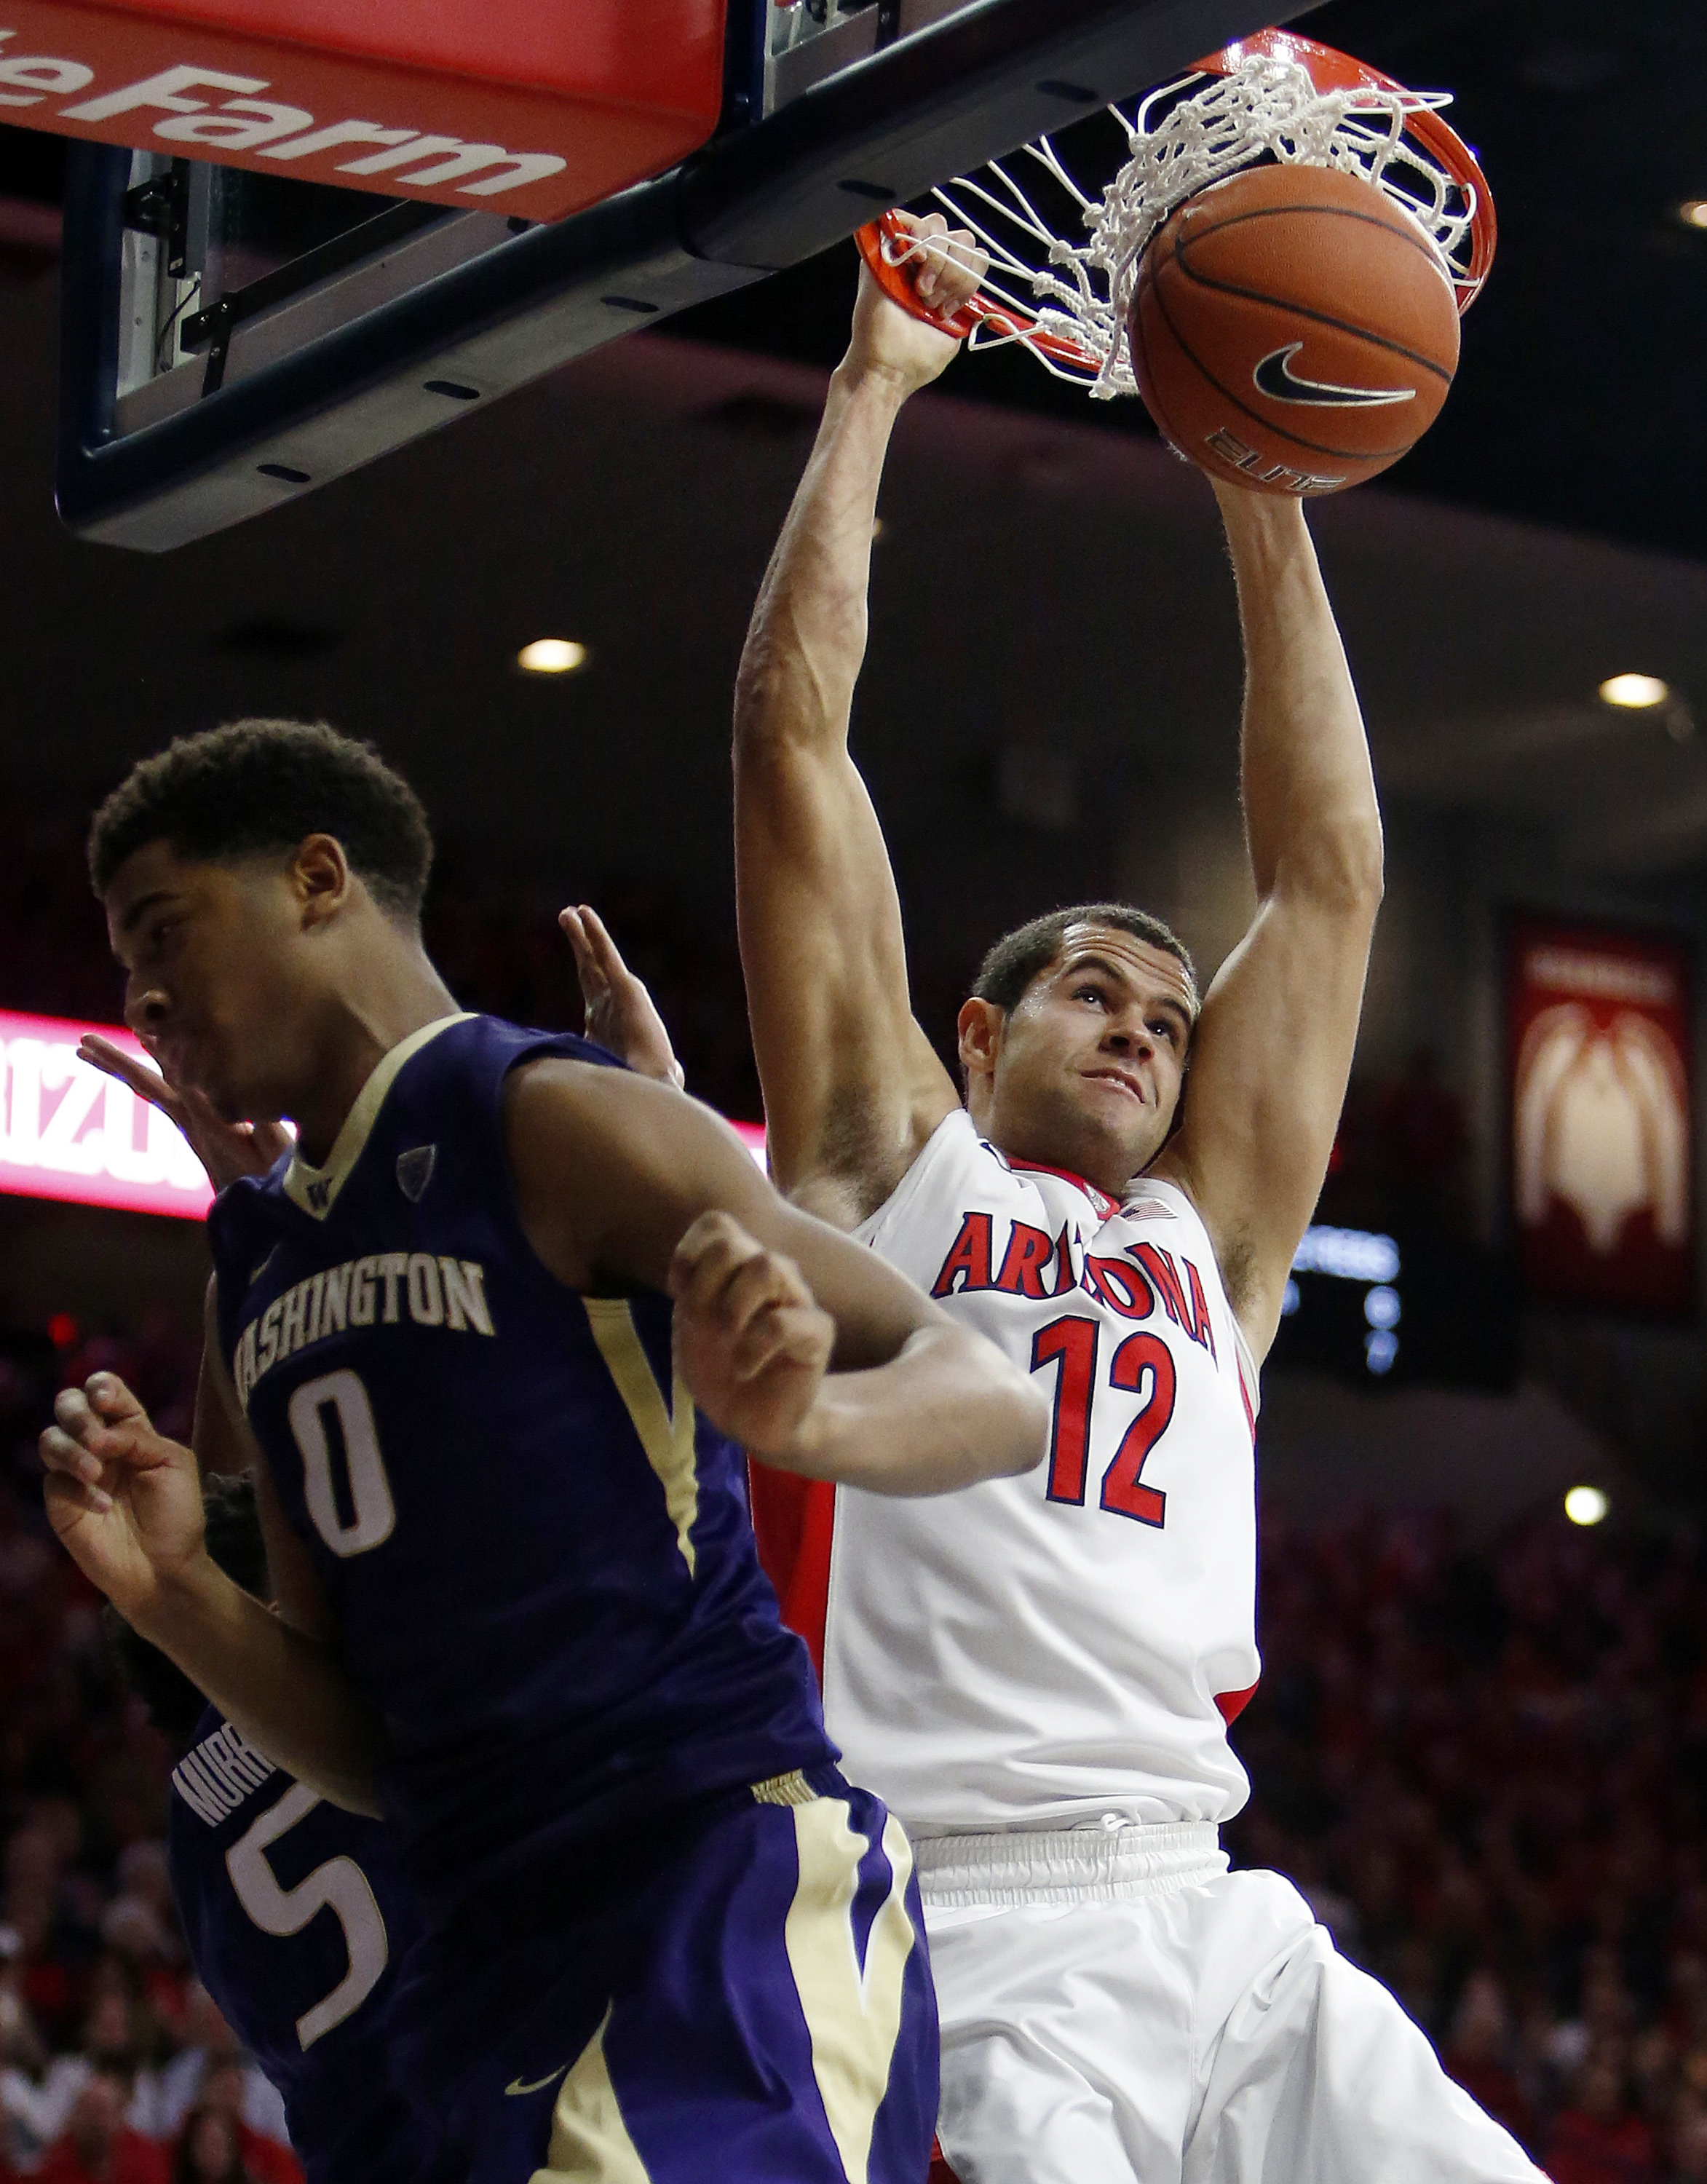 Arizona forward Ryan Anderson (12) dunks next to Washington guard Dejounte Murray (5) and forward Marquese Chriss (0) during the second half of an NCAA college basketball game Thursday, Jan. 14, 2016, in Tucson, Ariz. Arizona defeated Washington 99-67. (A